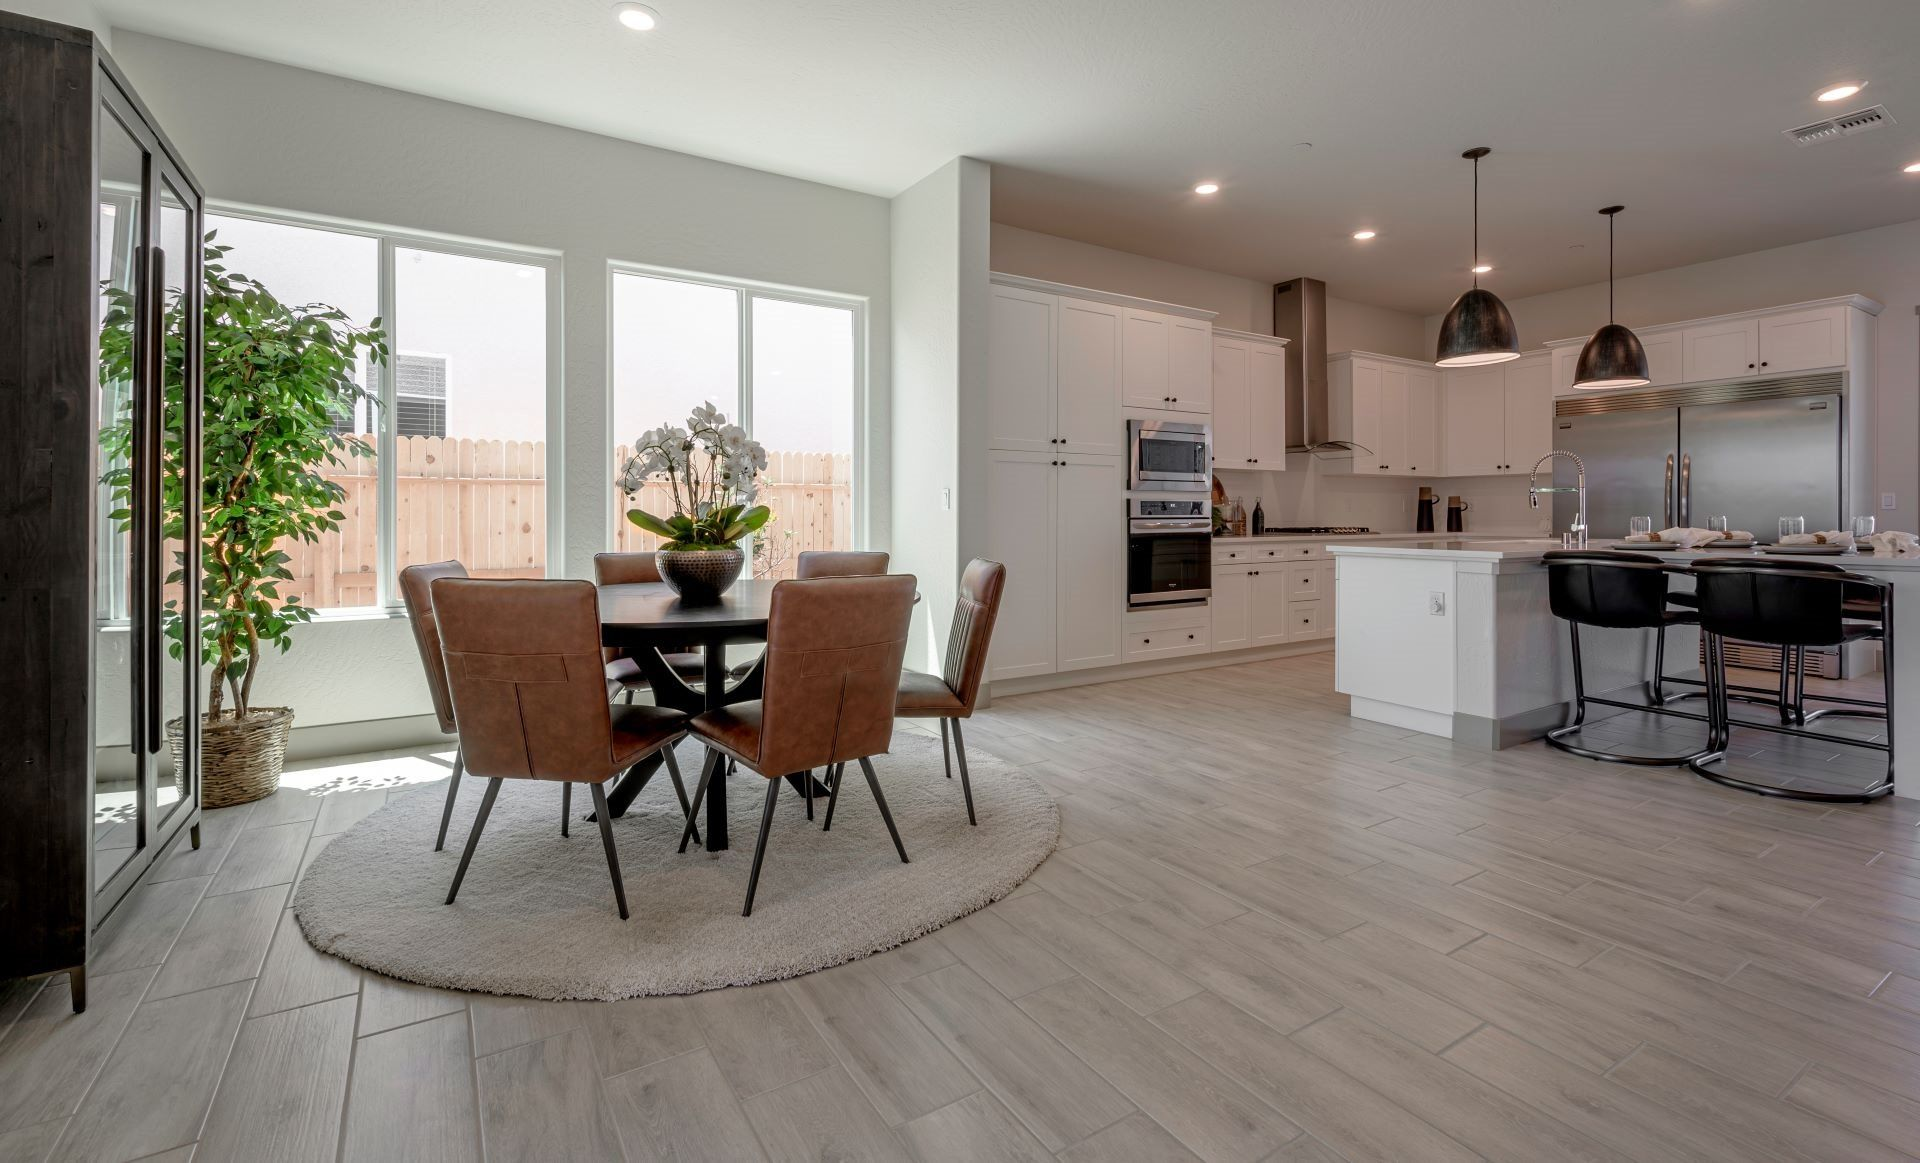 Kitchen featured in the Alpenglow By Lennar in Fresno, CA